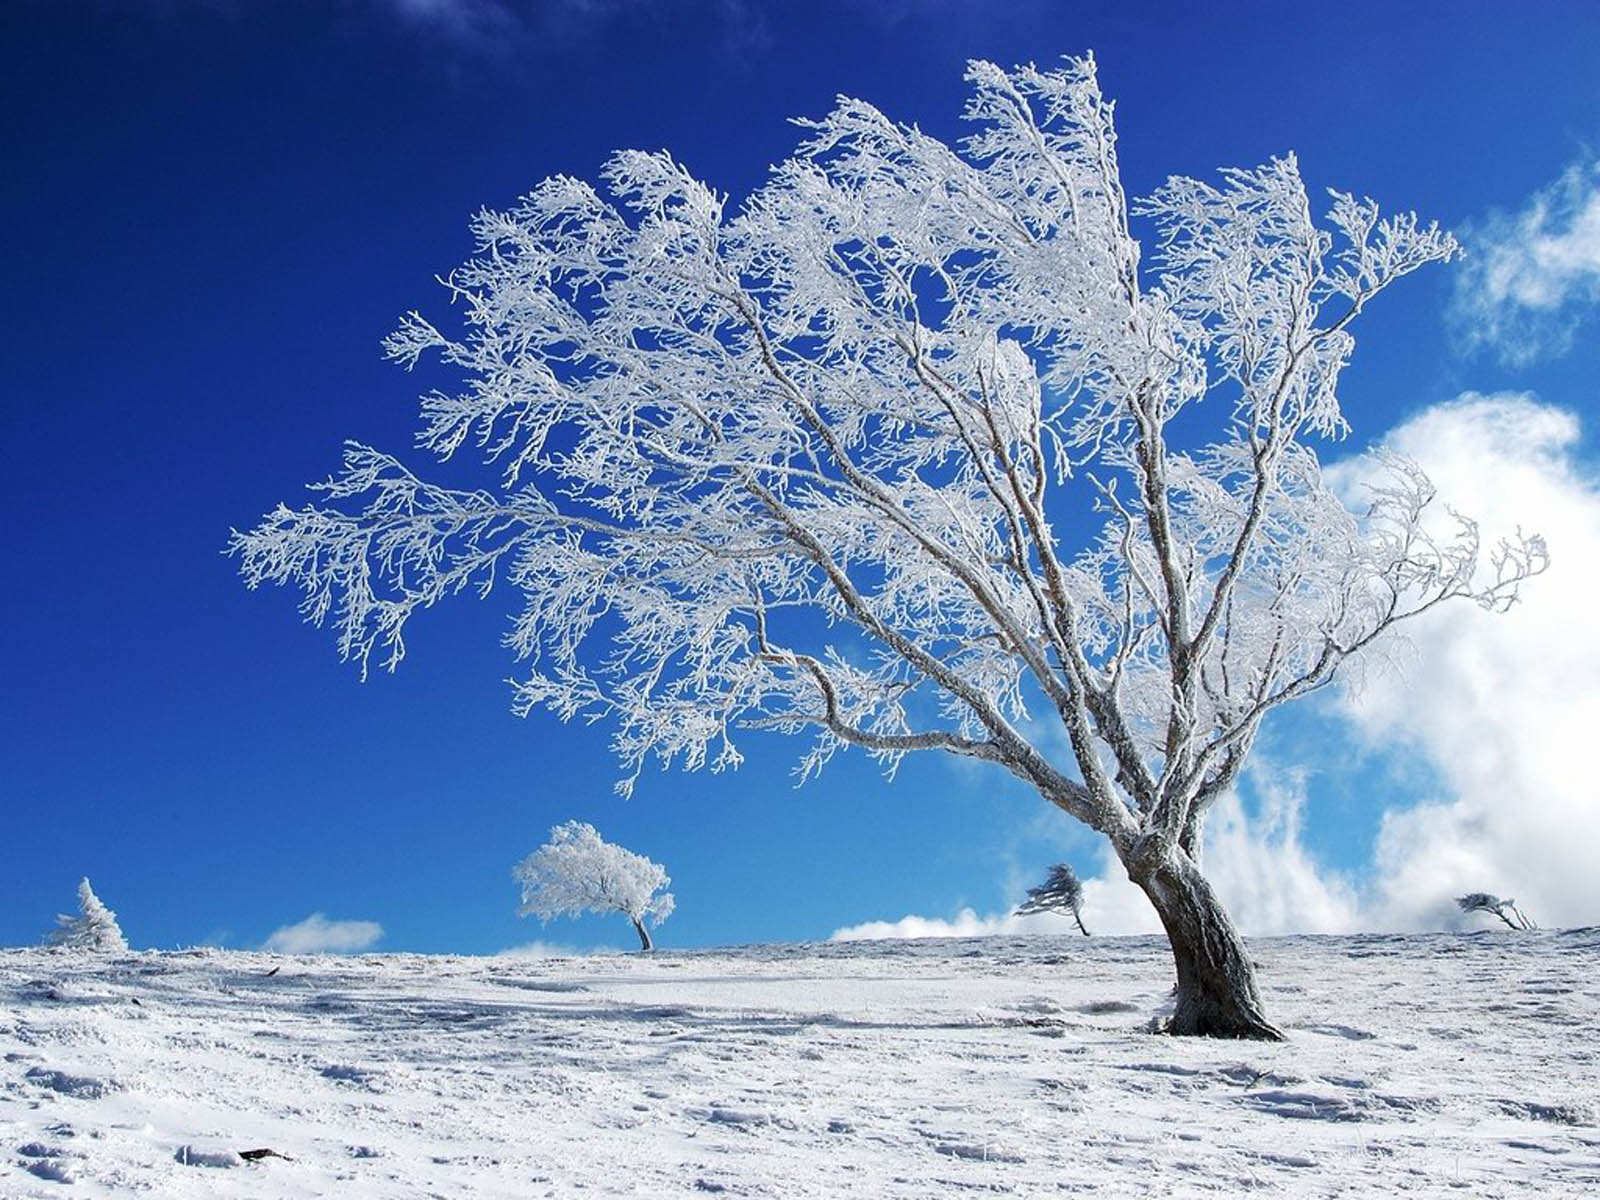 Winter Wallpaper For Desktops tag winter desktop wallpapers backgrounds paos pictures and images for